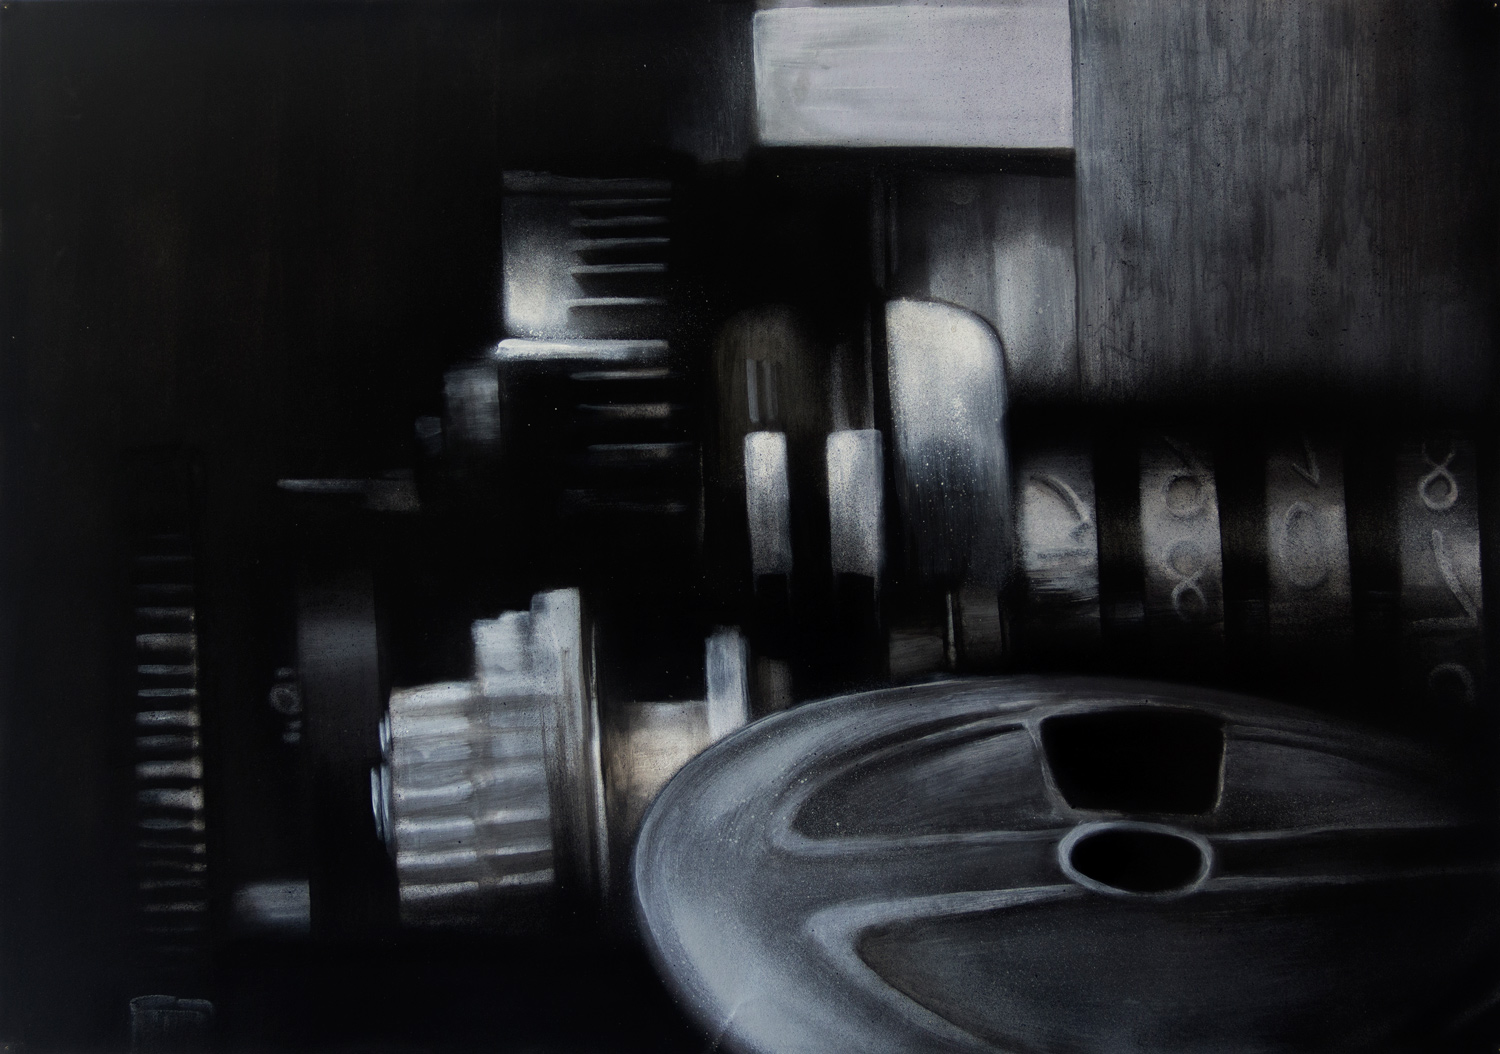 Machine III; 100 x 70 cm; Acrylics on Paper; 2014